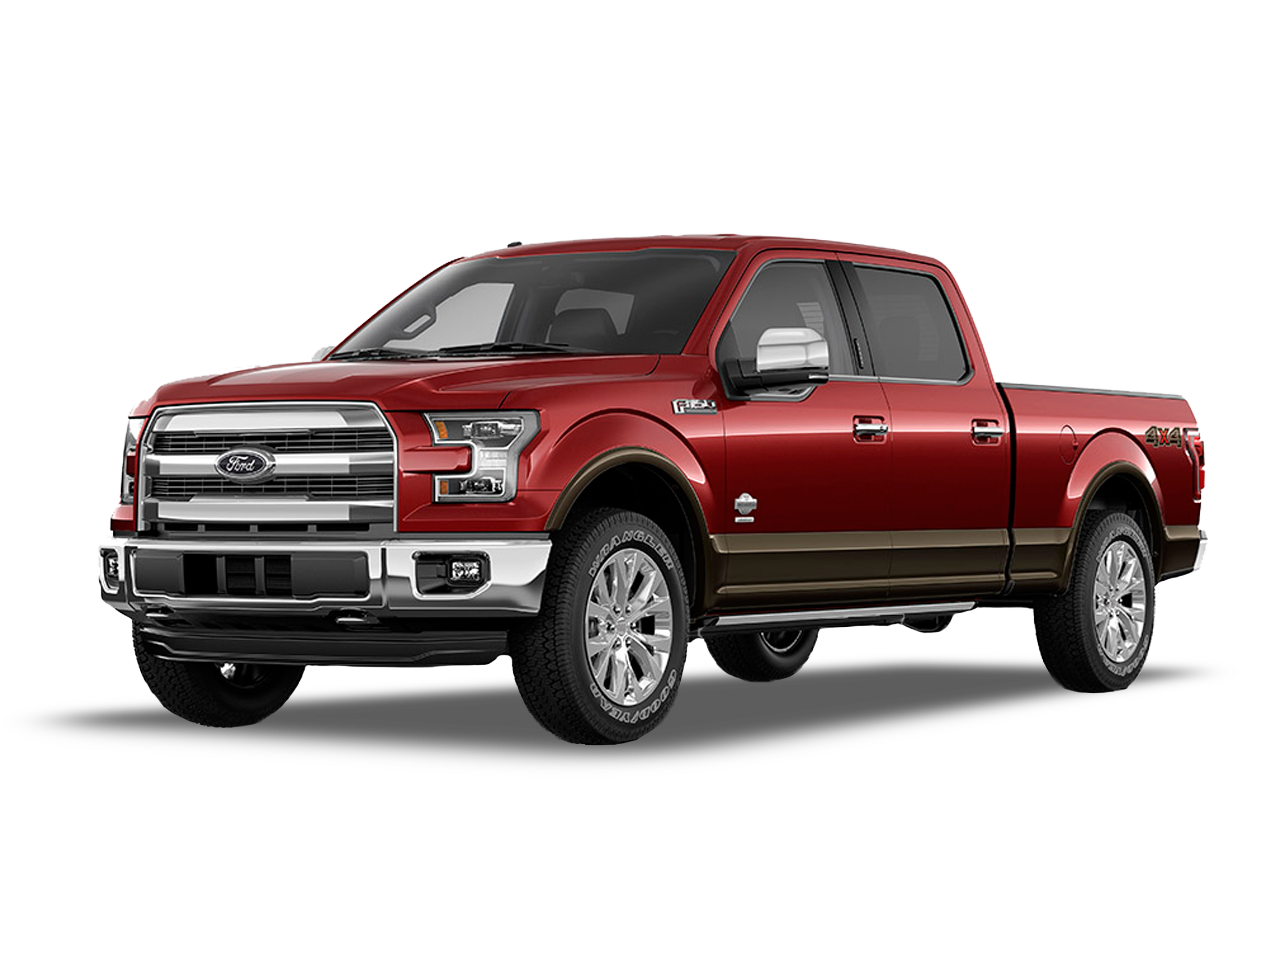 buy or lease the new f 150 near boston quirk ford. Black Bedroom Furniture Sets. Home Design Ideas